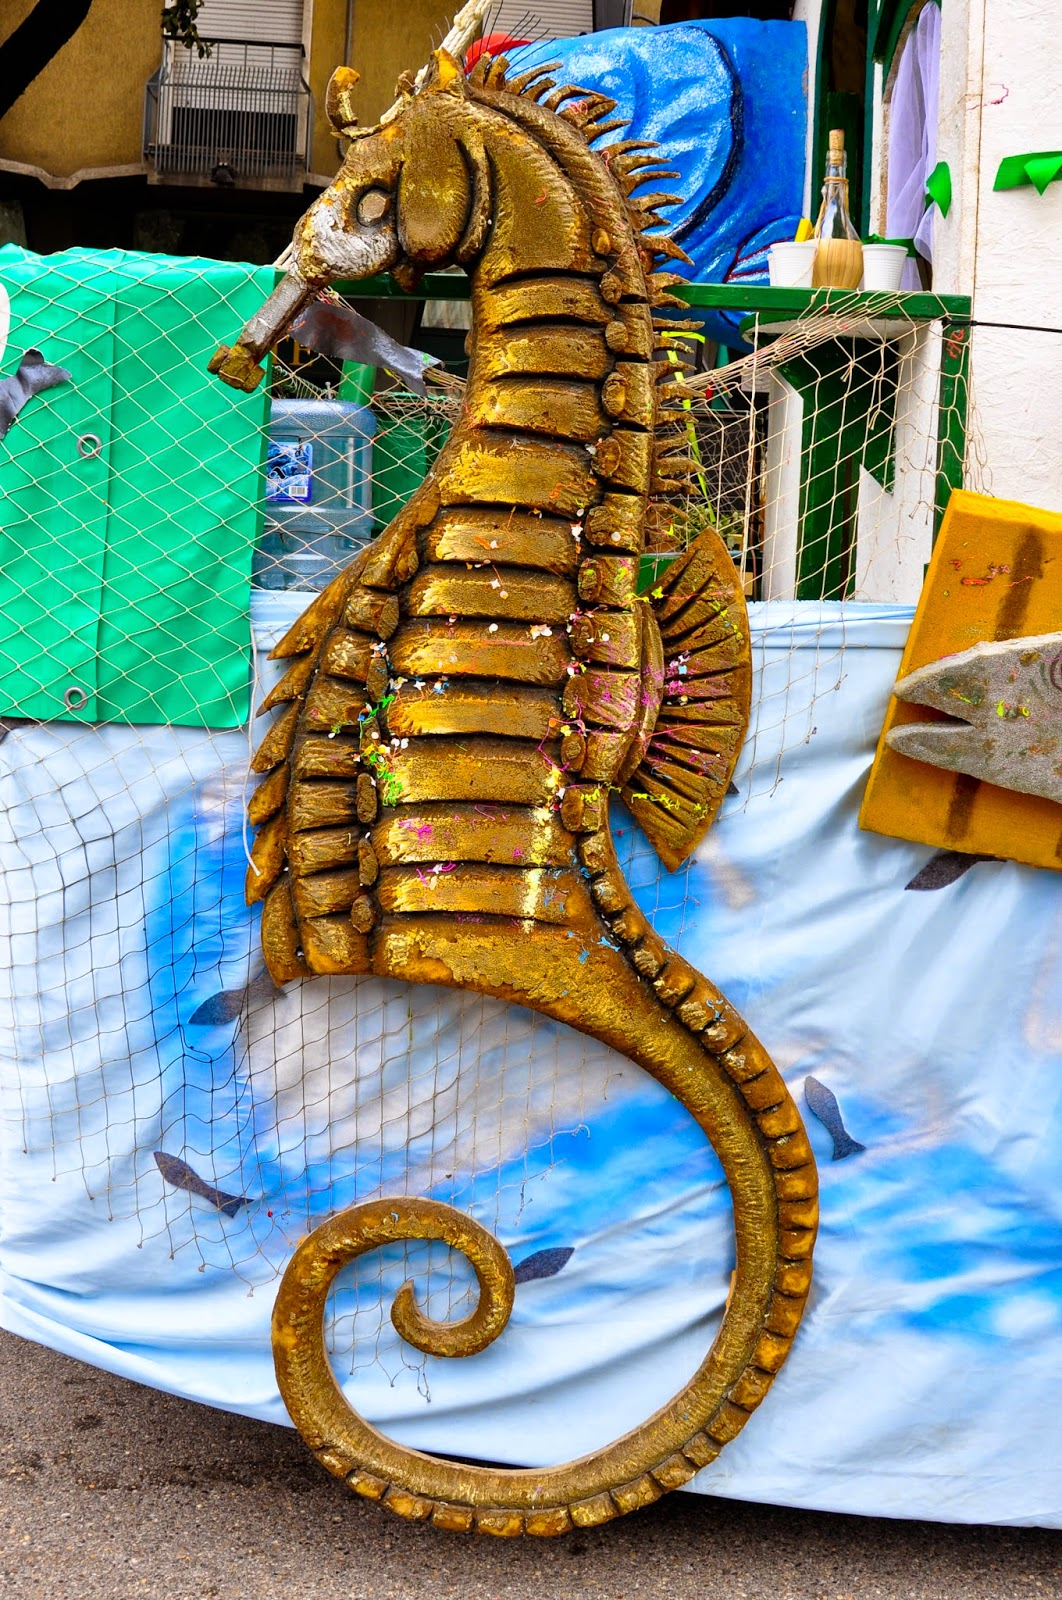 A seahorse adorns a large float at the parade for Verona Carnival